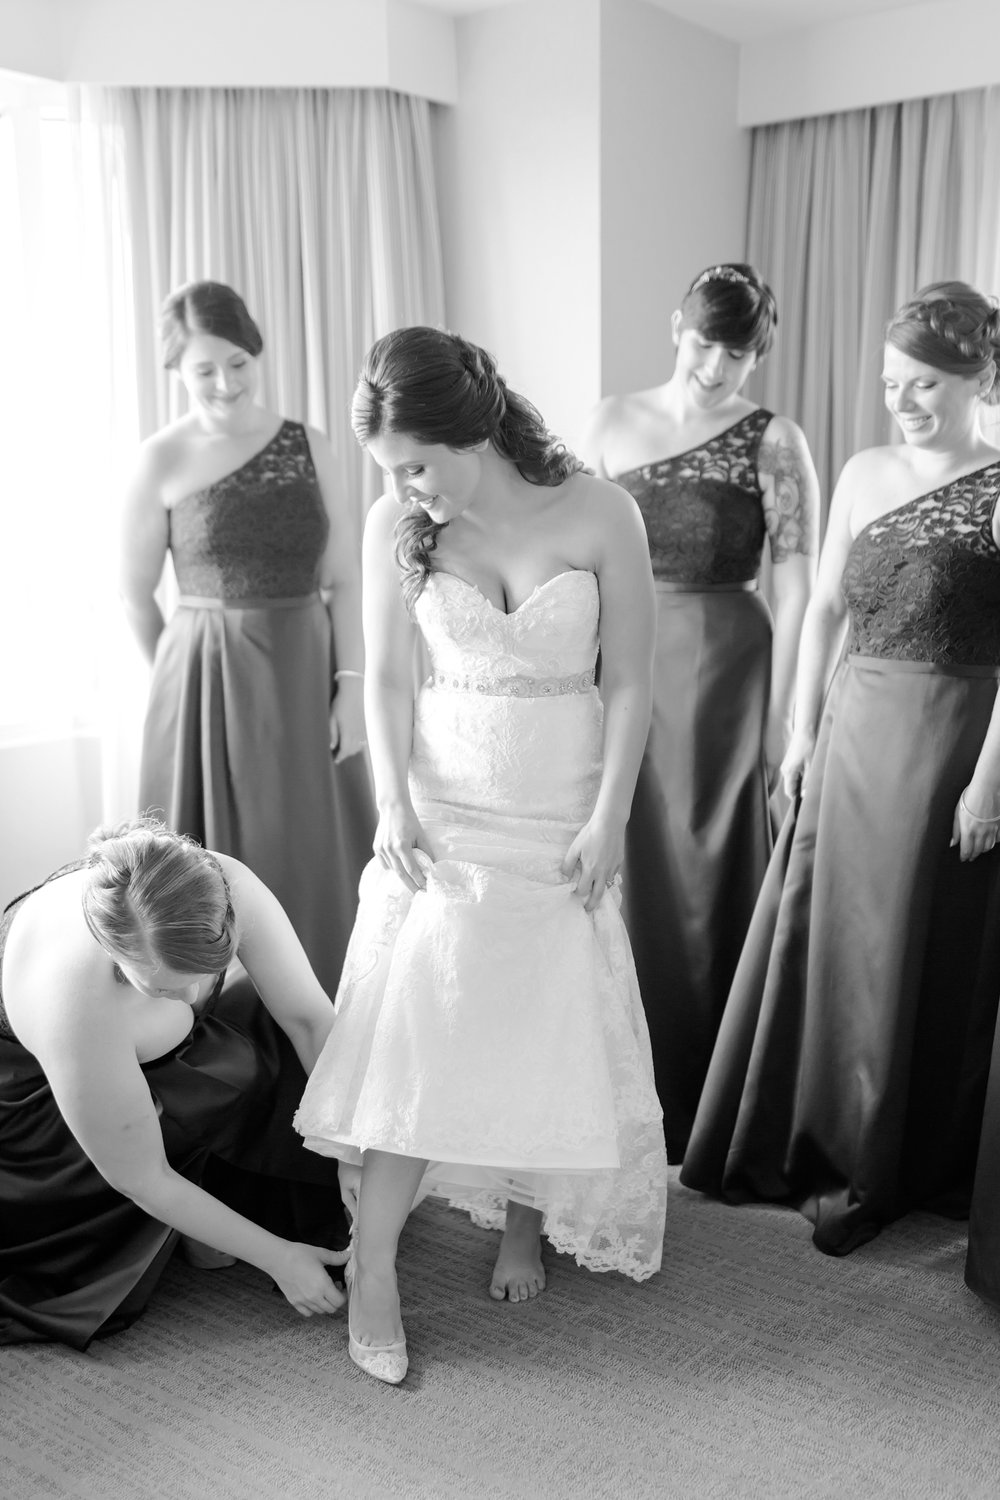 MacDonald 1. Getting Ready-170_anna grace photography leesburg virginia wedding photographer lansdowne resort wedding photo.jpg